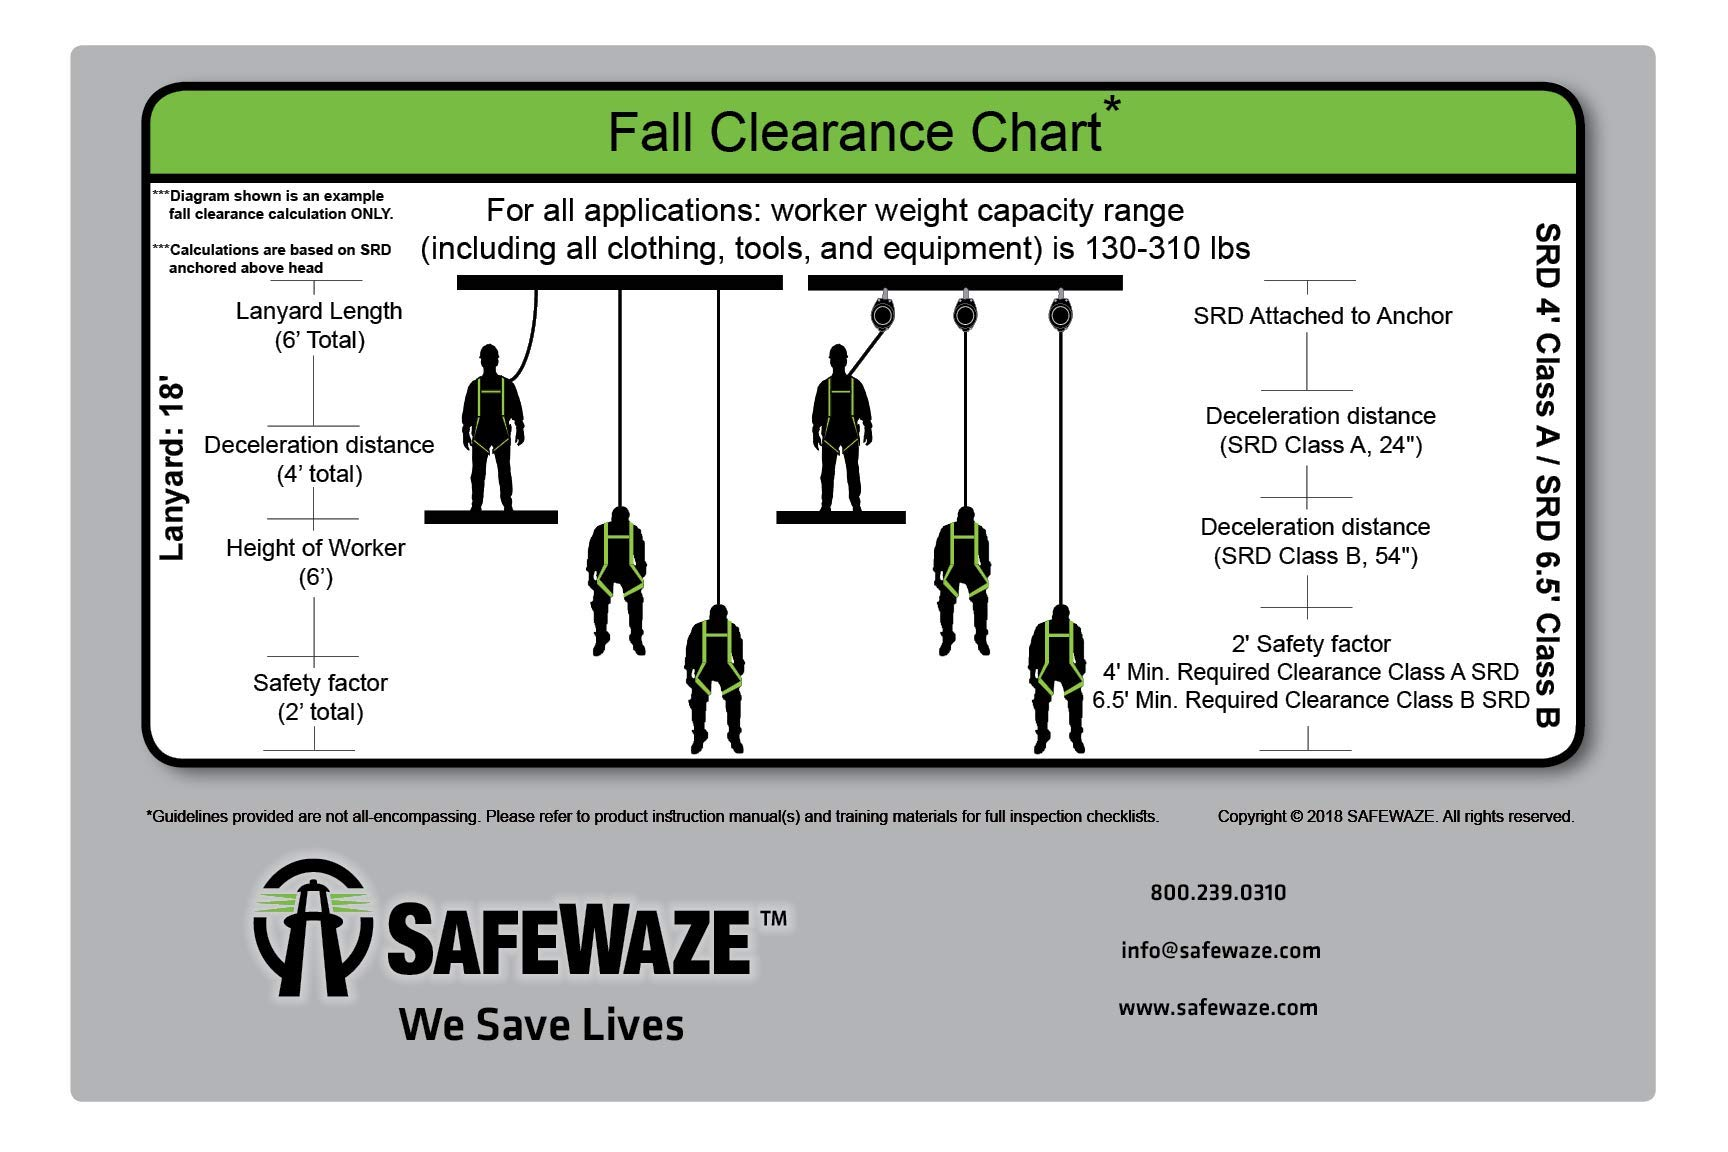 SafeWaze 65' Cable Retractable Lifeline with Locking Snap Hook, Single Person Fall Protection Device, OSHA/ANSI Compliant (FS-EX1065-G) by SafeWaze (Image #2)